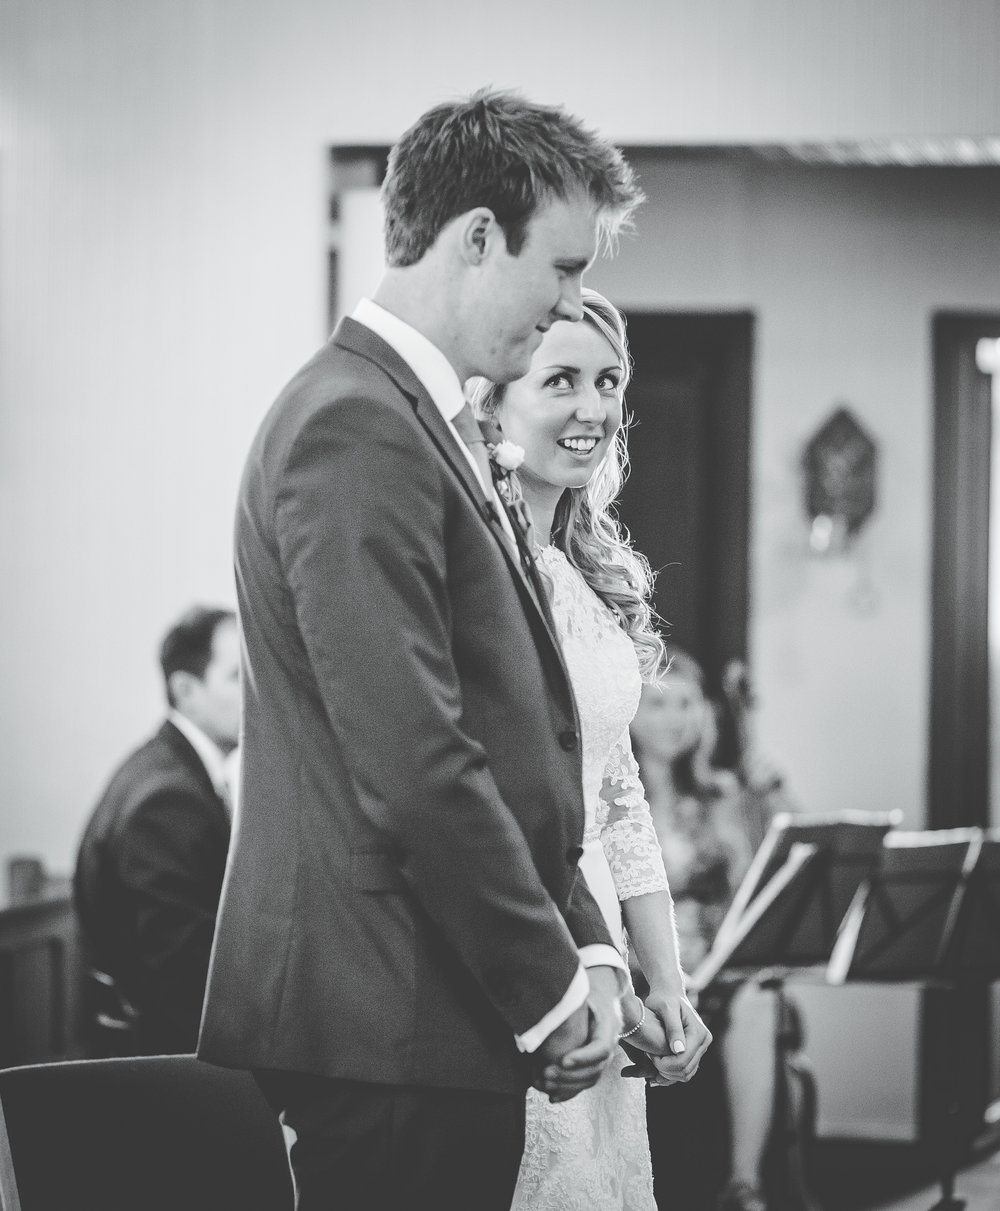 The bride and groom at the alter, Documentary styled wedding photographer.